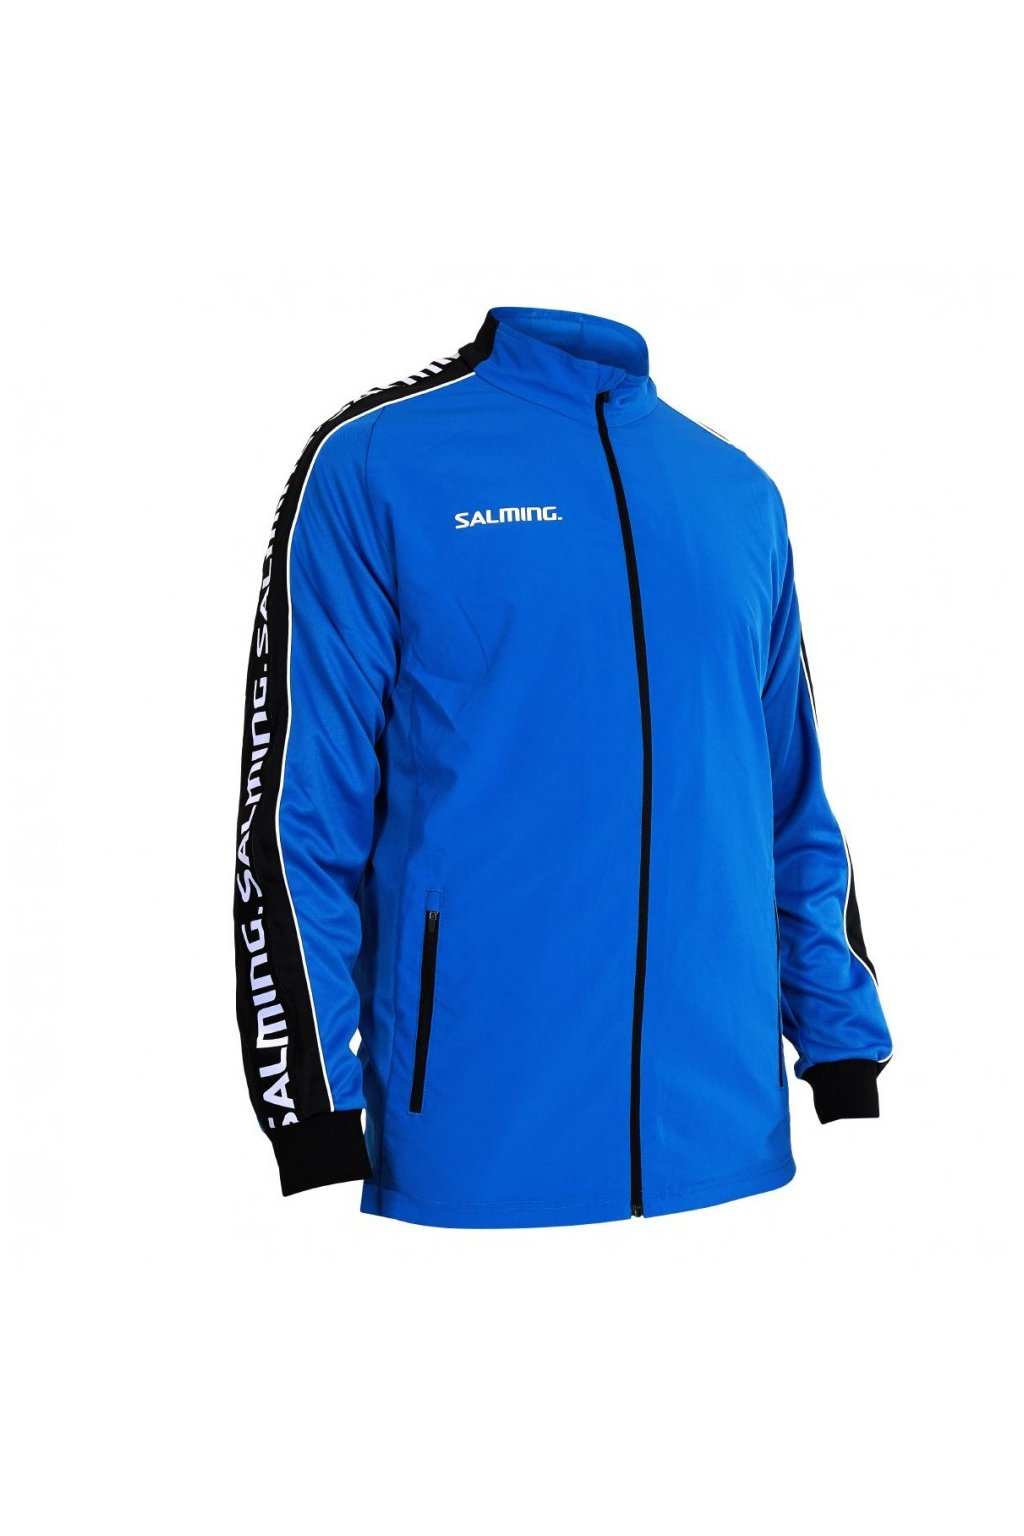 salming delta jacket men (3)